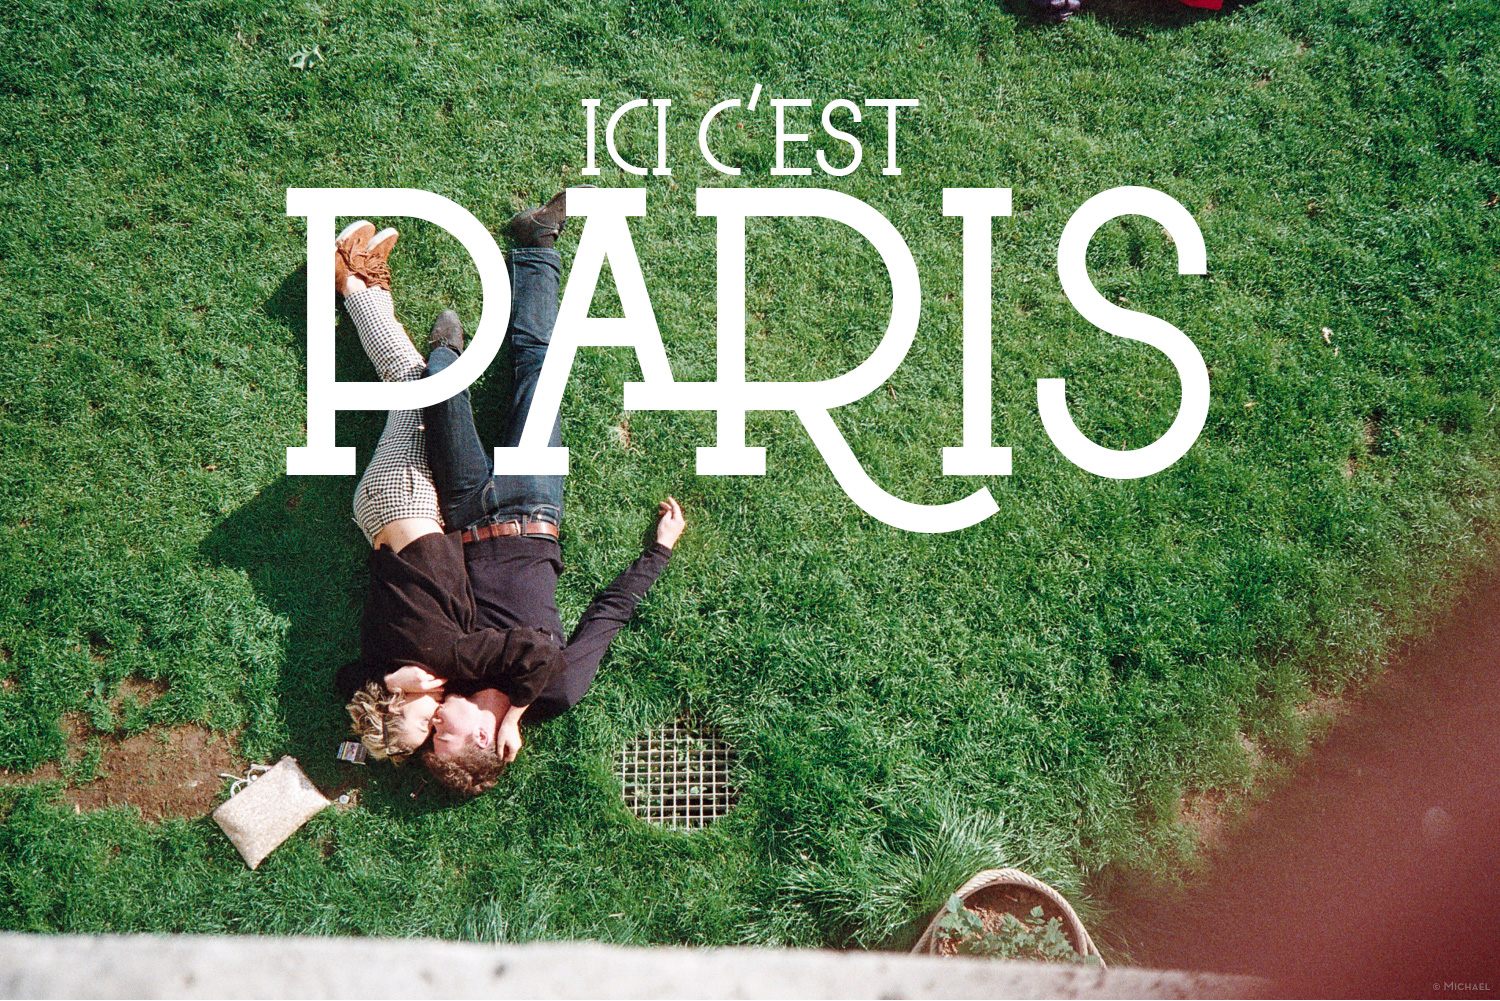 Art62-Ici-cest-Paris